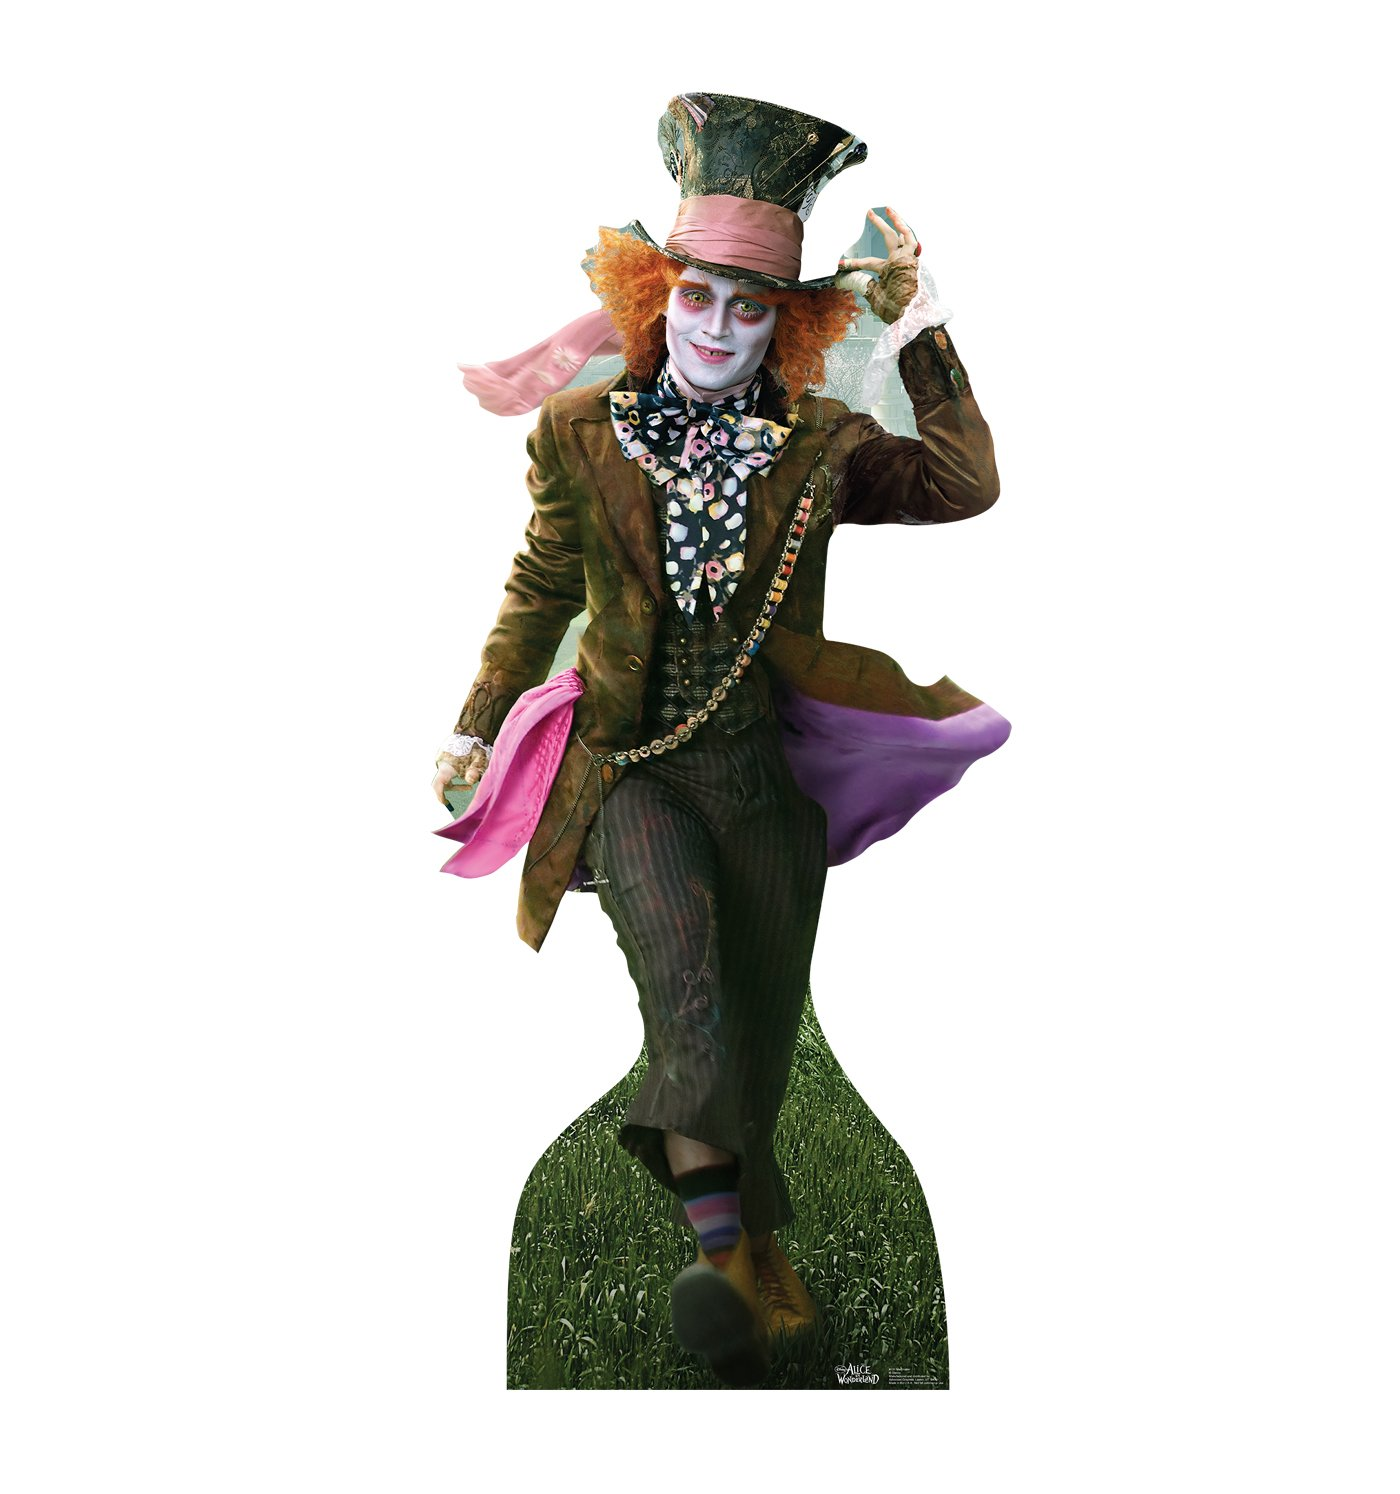 Advanced Graphics Mad Hatter Johnny Depp in Alice in Wonderland LifeDimensione Wall Decor Cardboard Standup Cutout Standee Poster